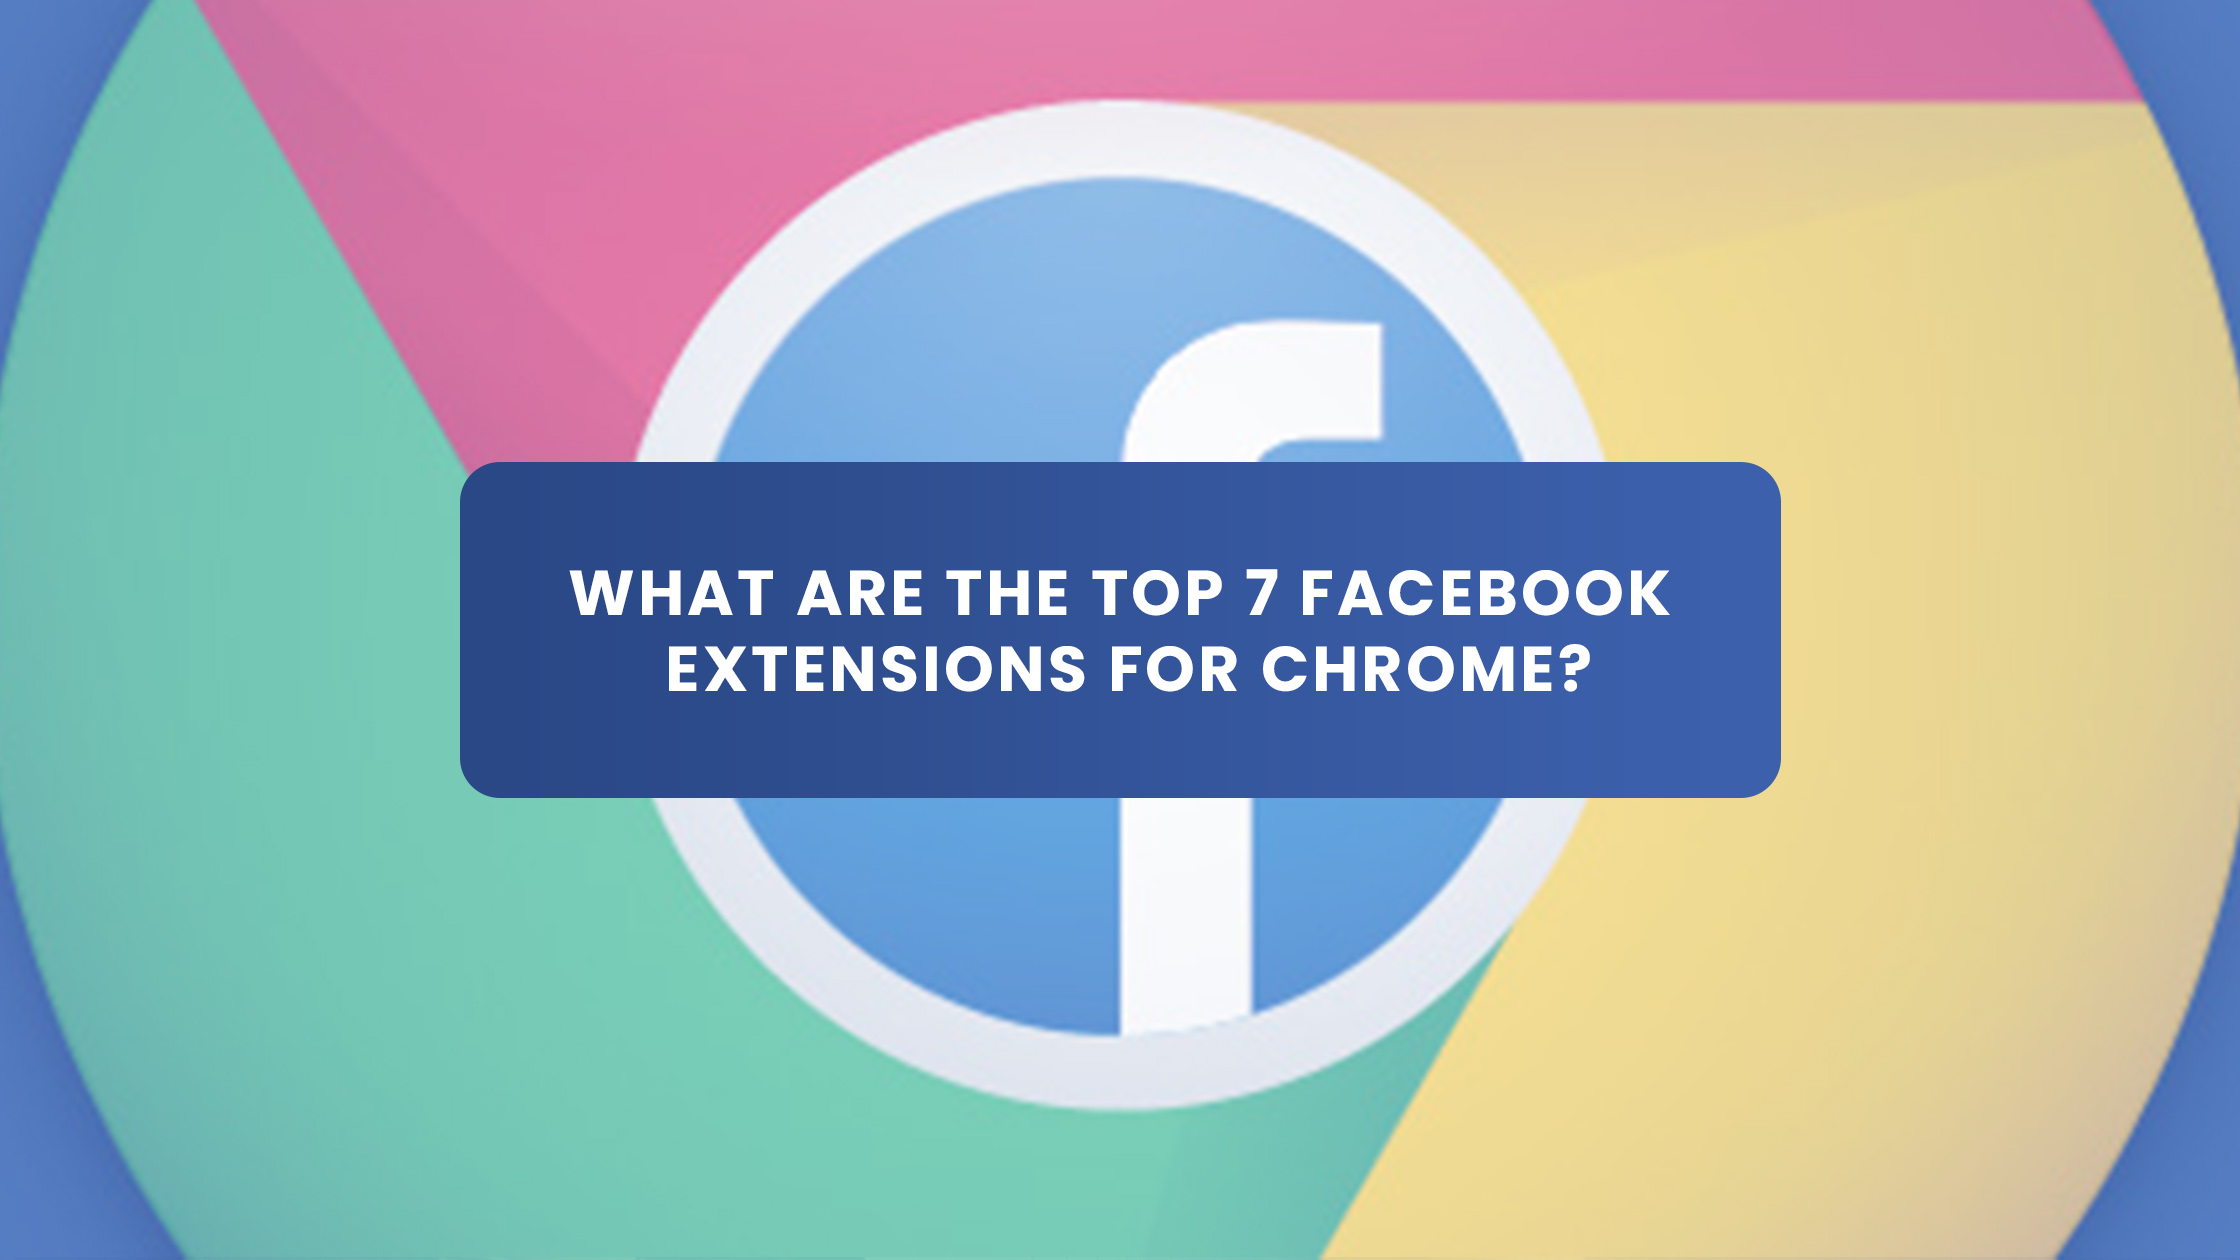 What Are The Top 7 Facebook Extensions For Chrome?